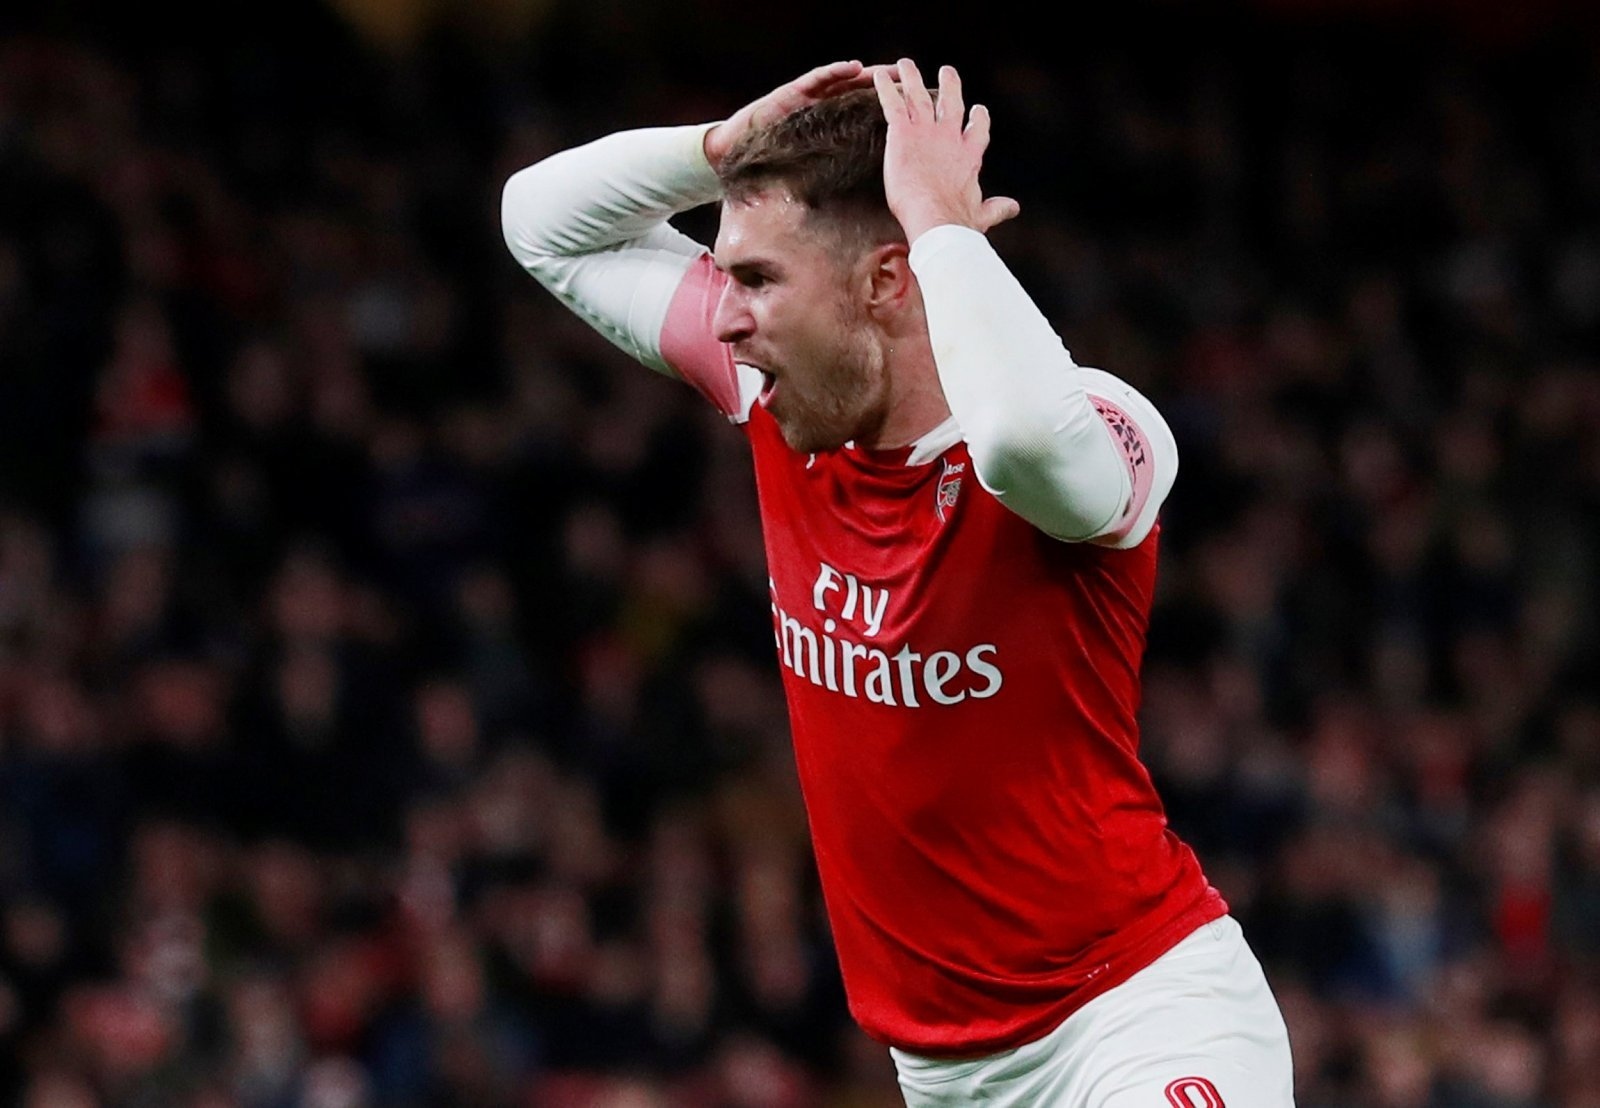 No brainer: Sanctioning Aaron Ramsey's January exit a must for cash-strapped Arsenal